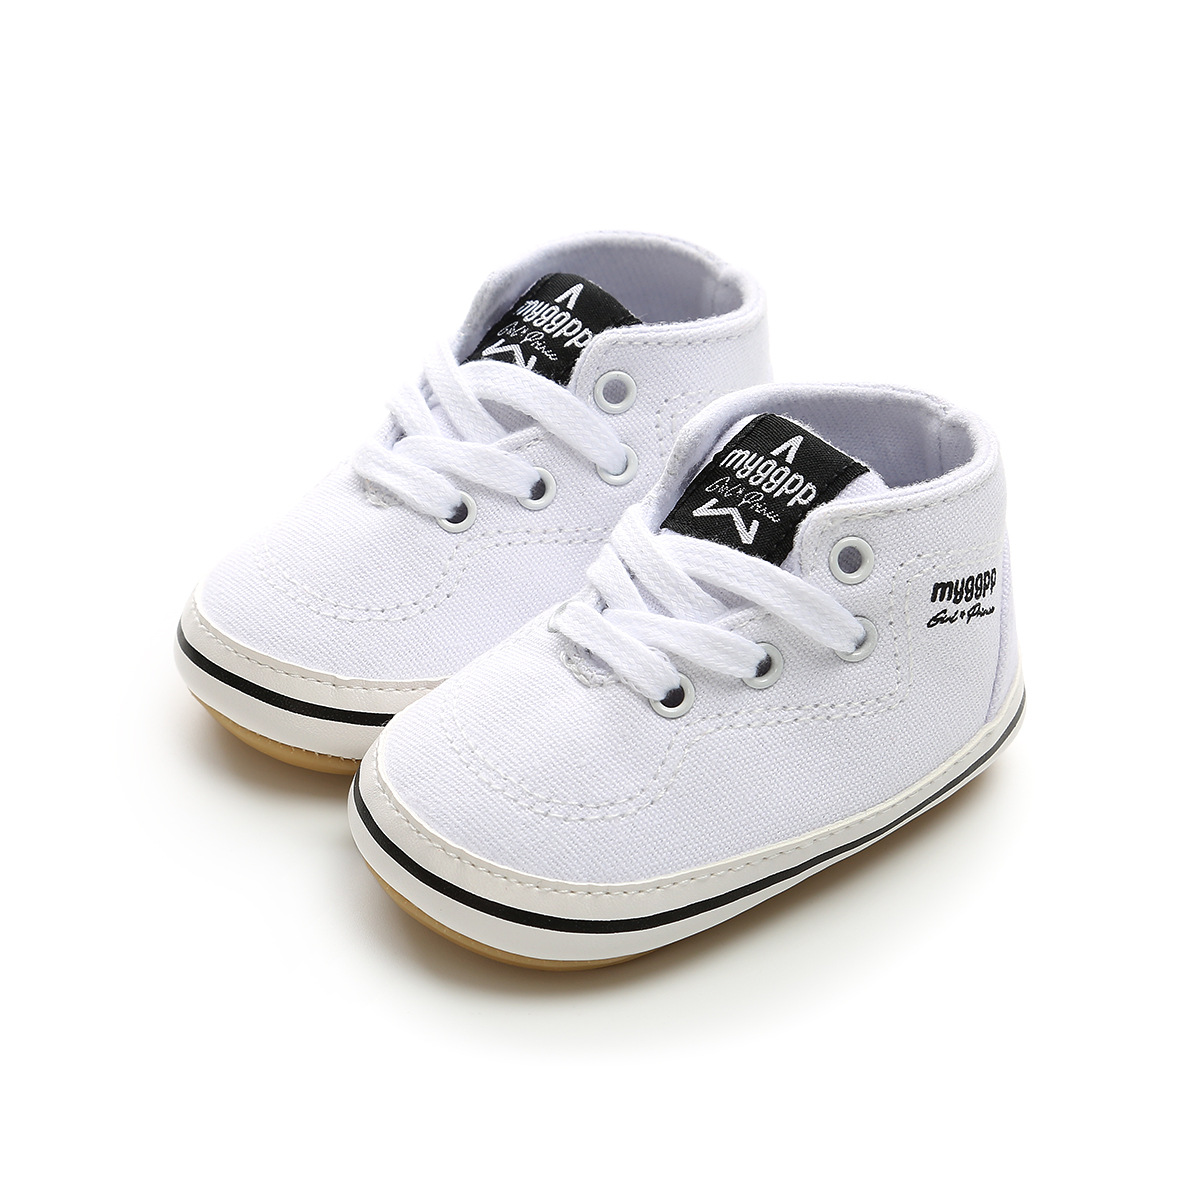 New Baby Shoes Fashion Toddler Infants Boys Shoes First Walkers Cloth Sneaker